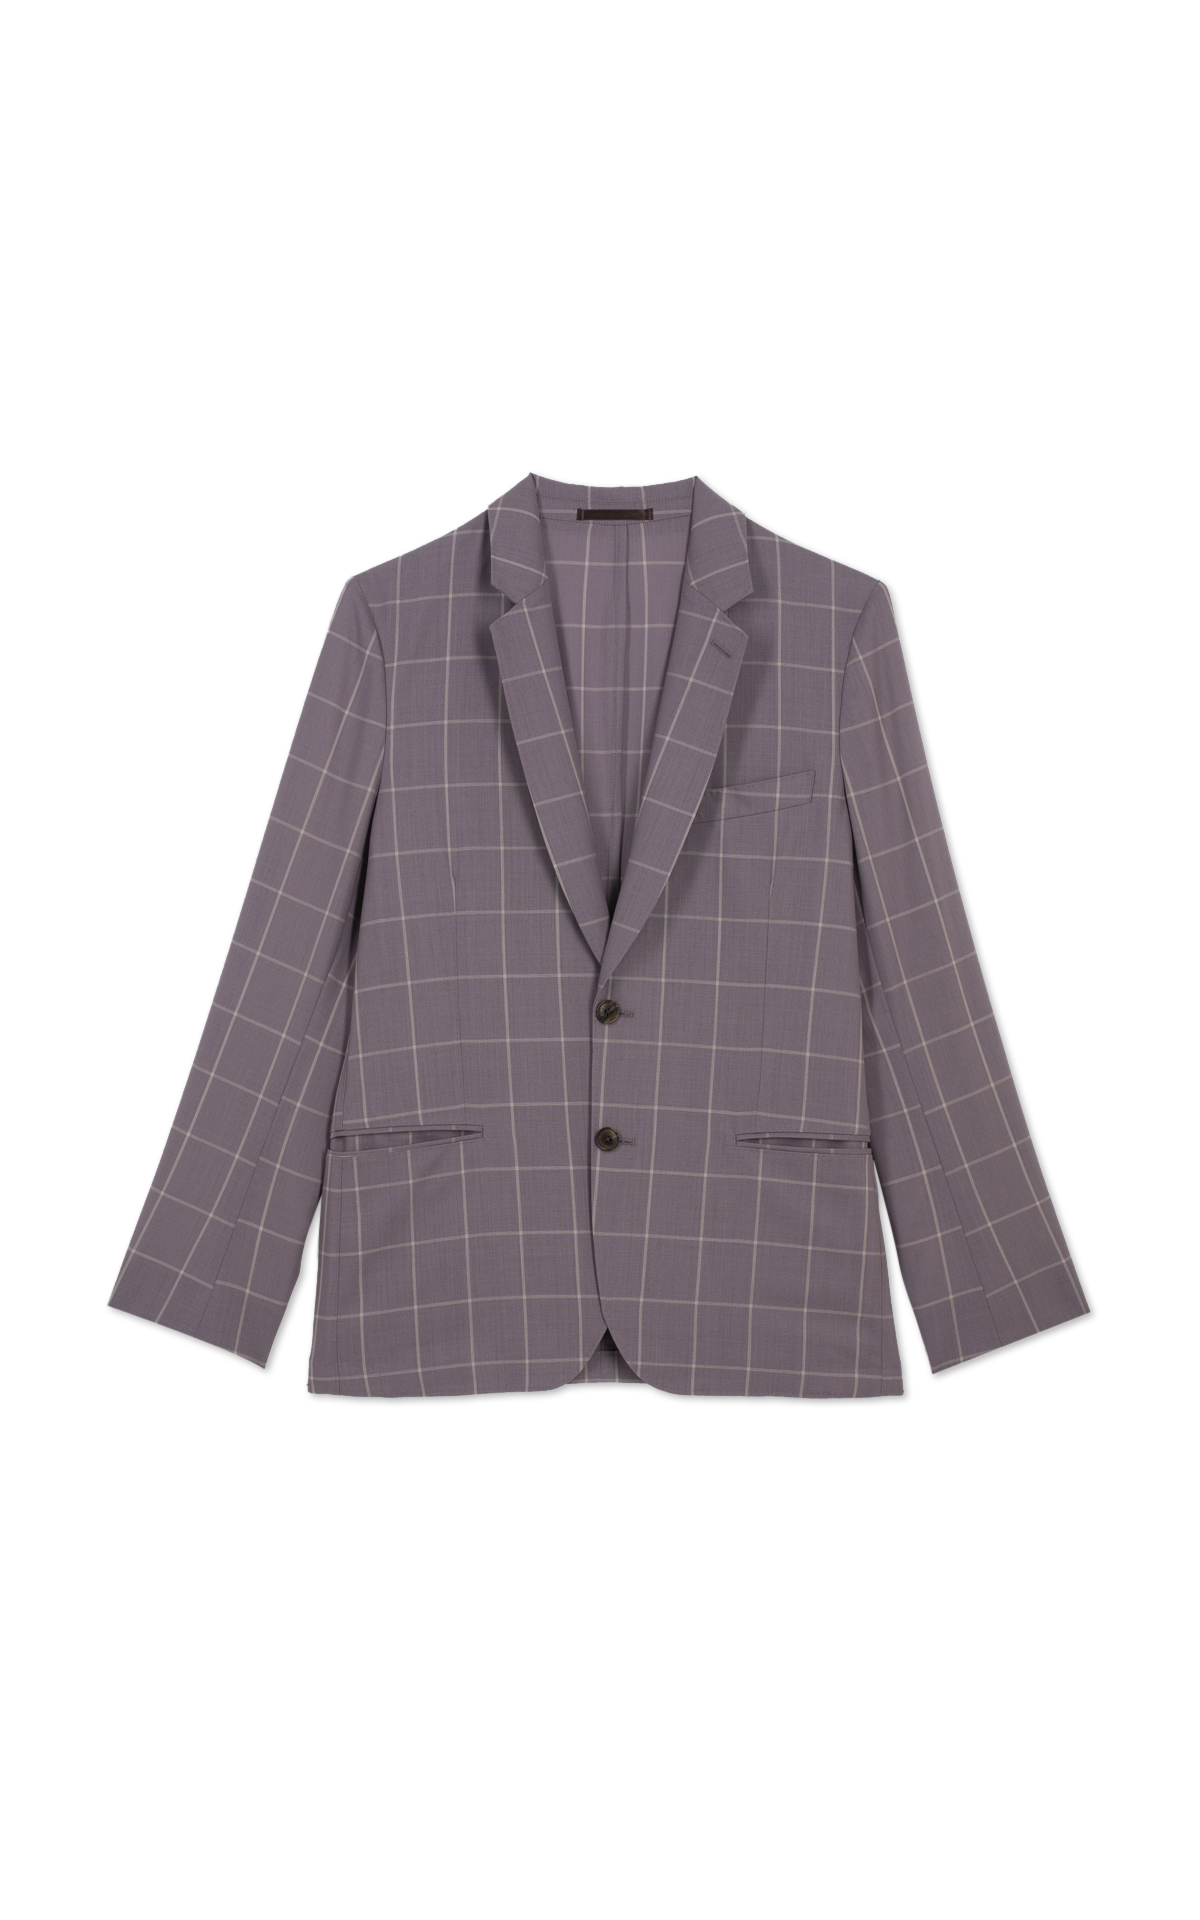 Paul smith Purple plaid jacket